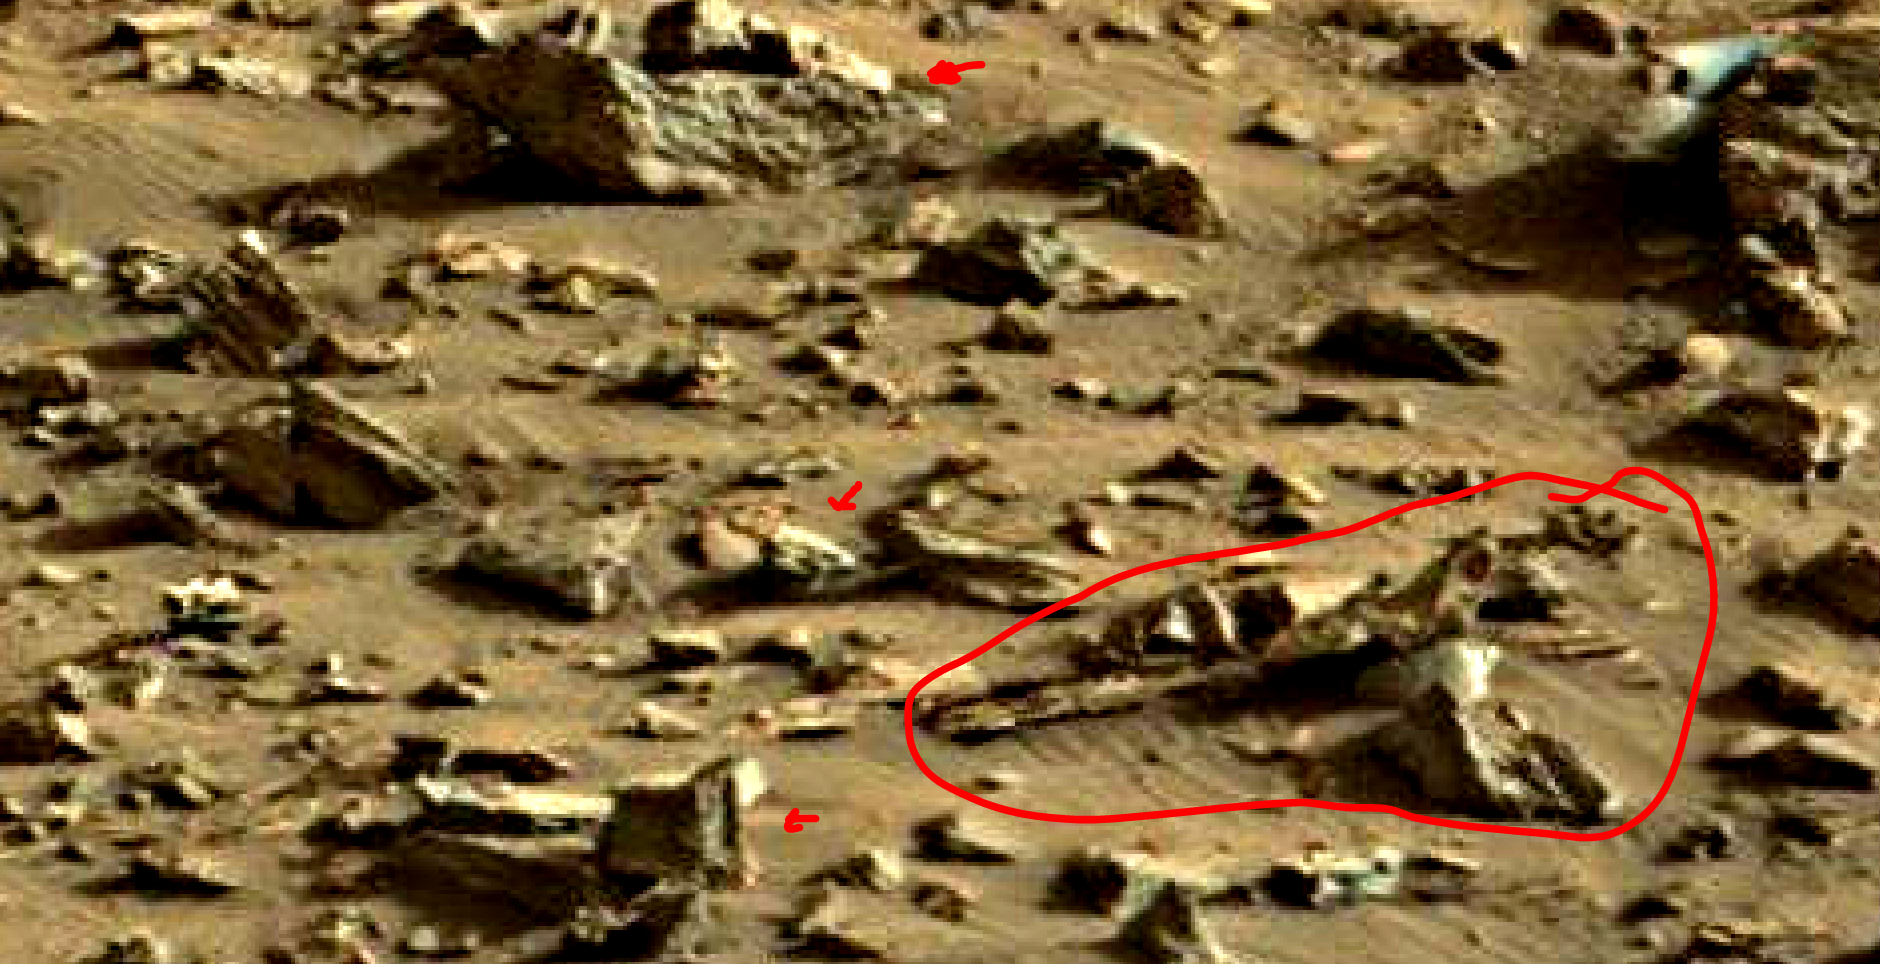 mars sol 1419 anomaly artifacts 14a was life on mars